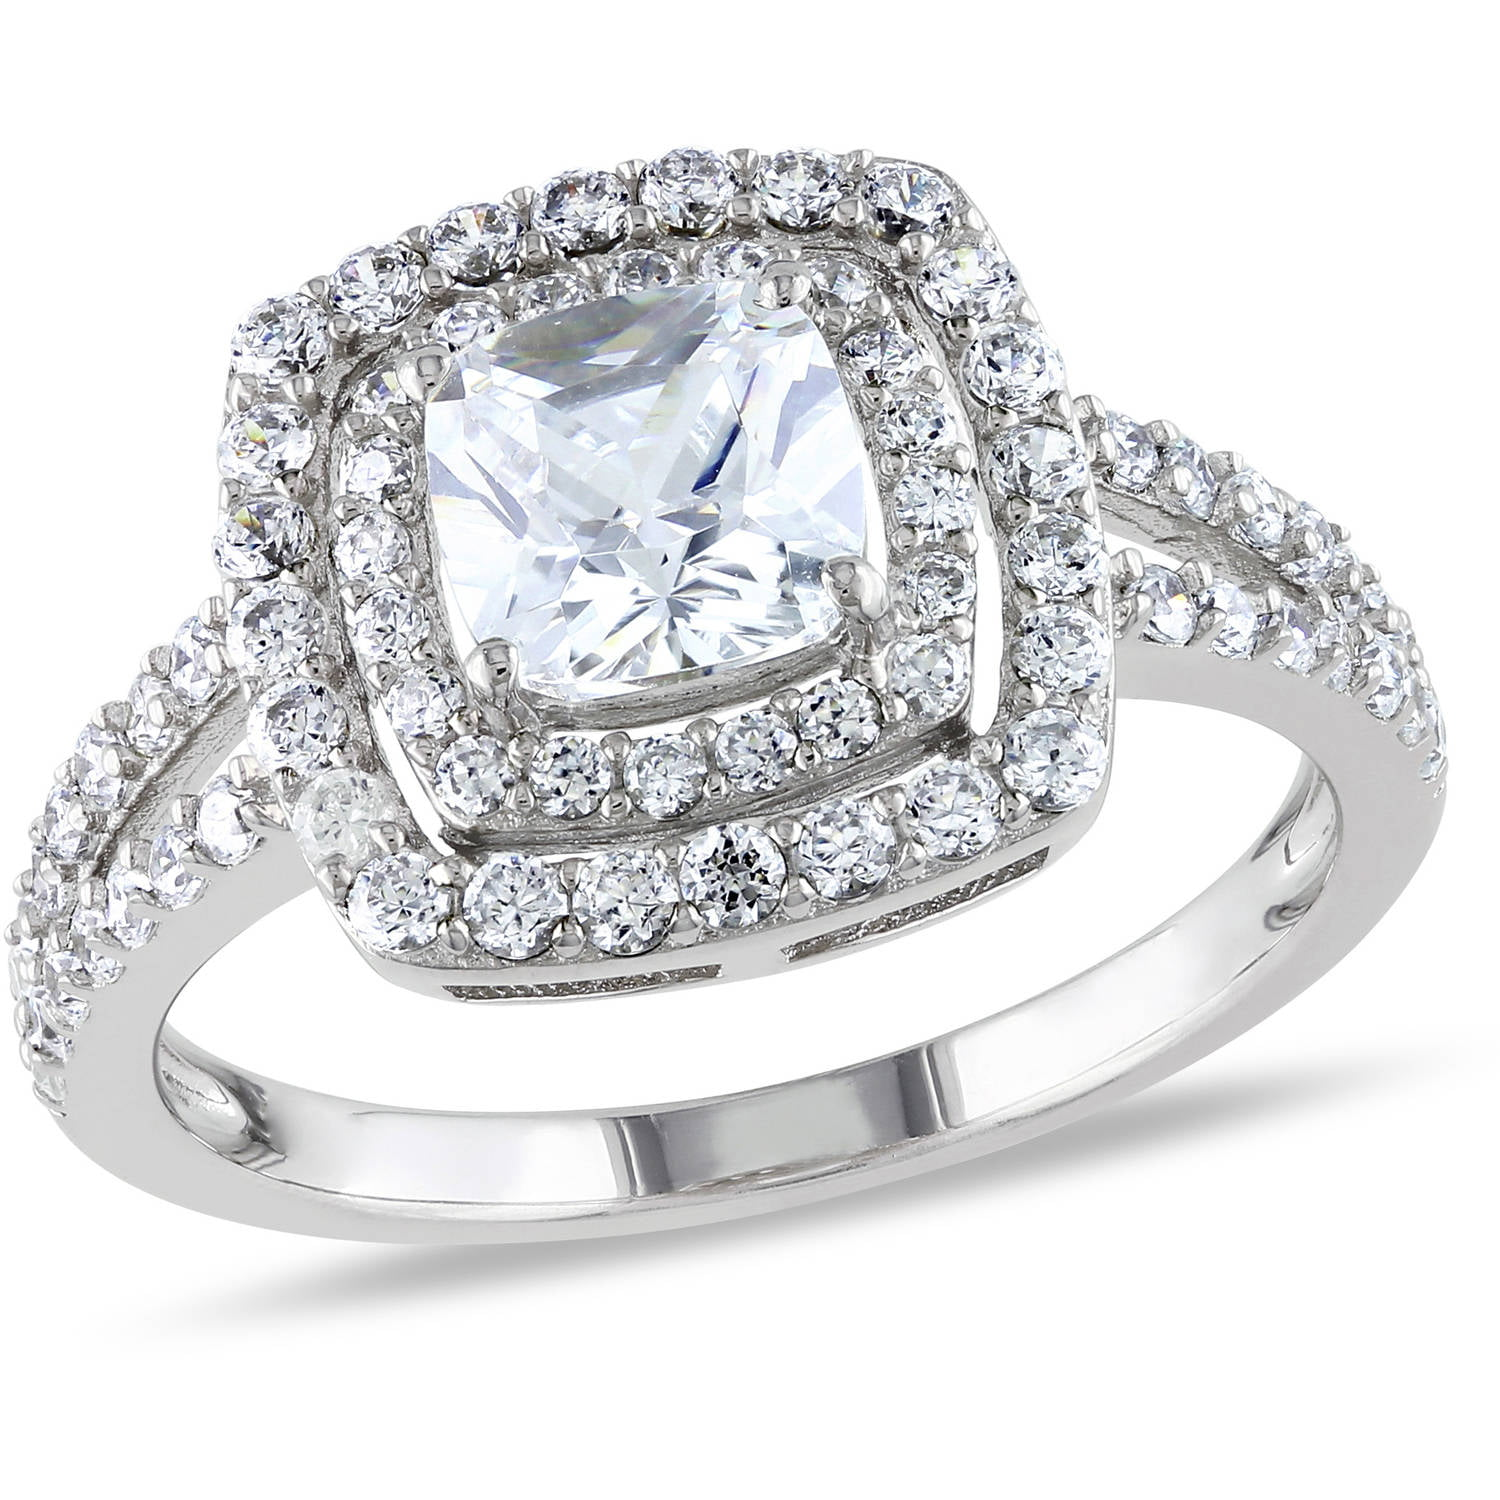 com cp one rings walmart piece wedding